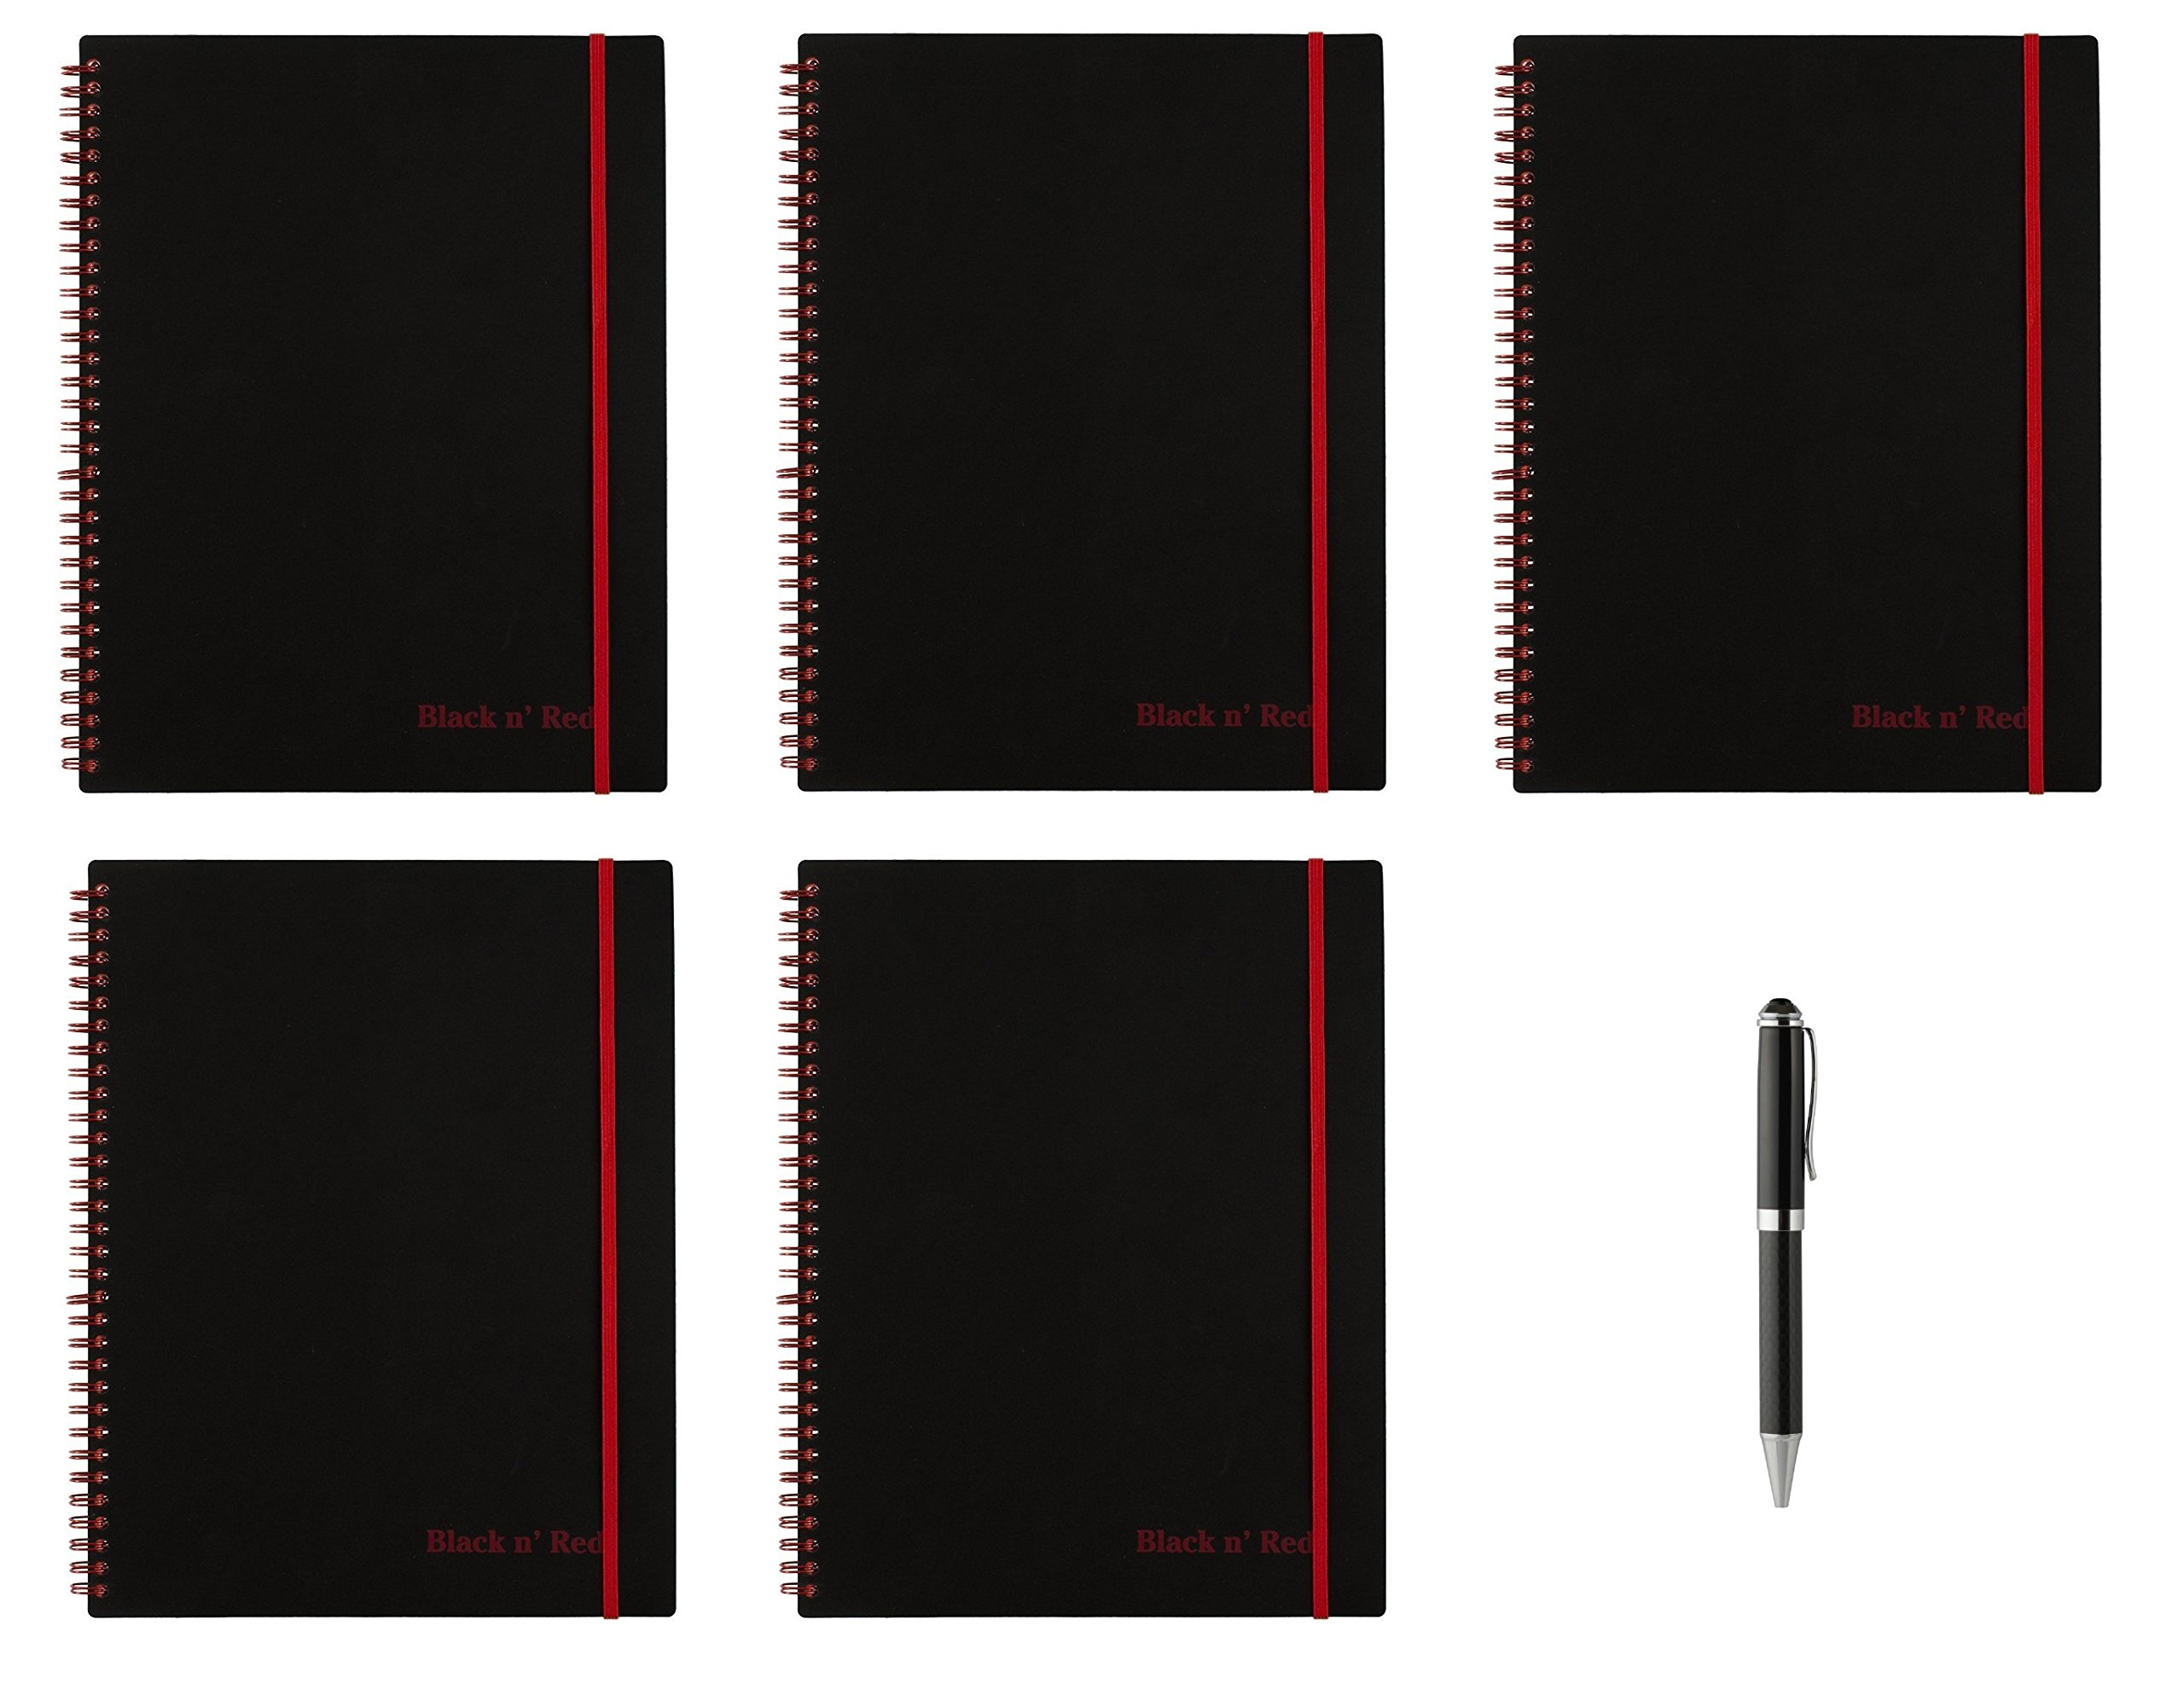 Black n' Red Twin Wire Poly Cover Notebook, 11'' x 8-1/2'', Black/Red, 70 Ruled Sheets. 5 Pack (K66652) - Bundle Includes Plexon Ballpoint Pen